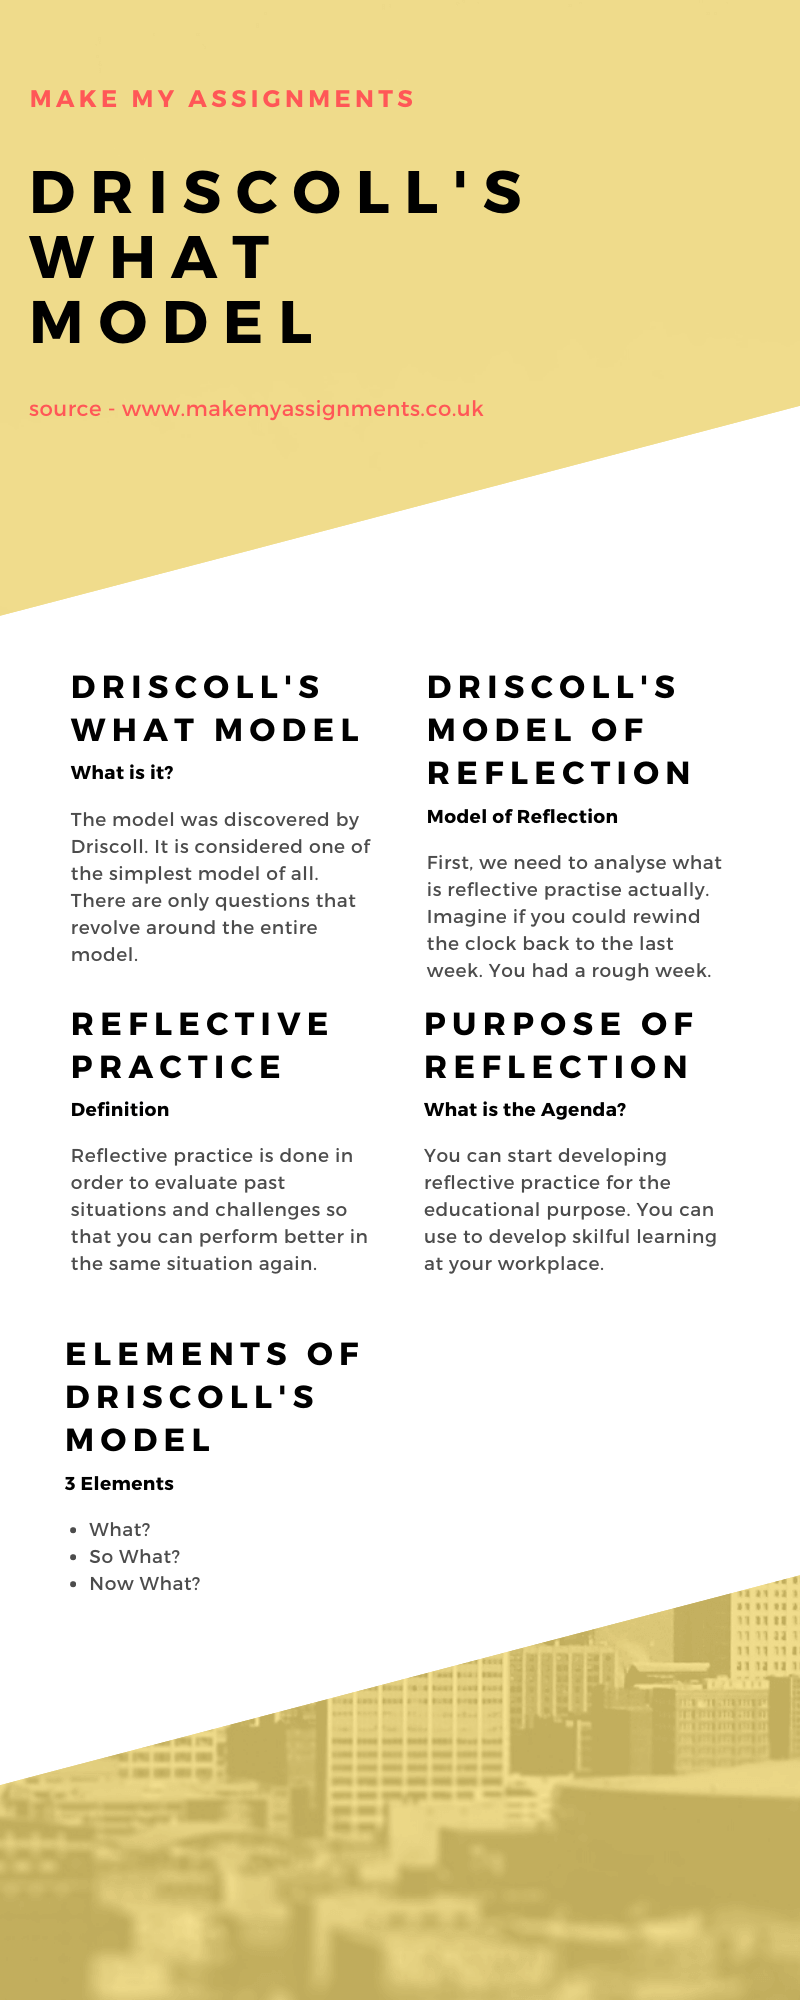 Driscoll's Model of Reflection